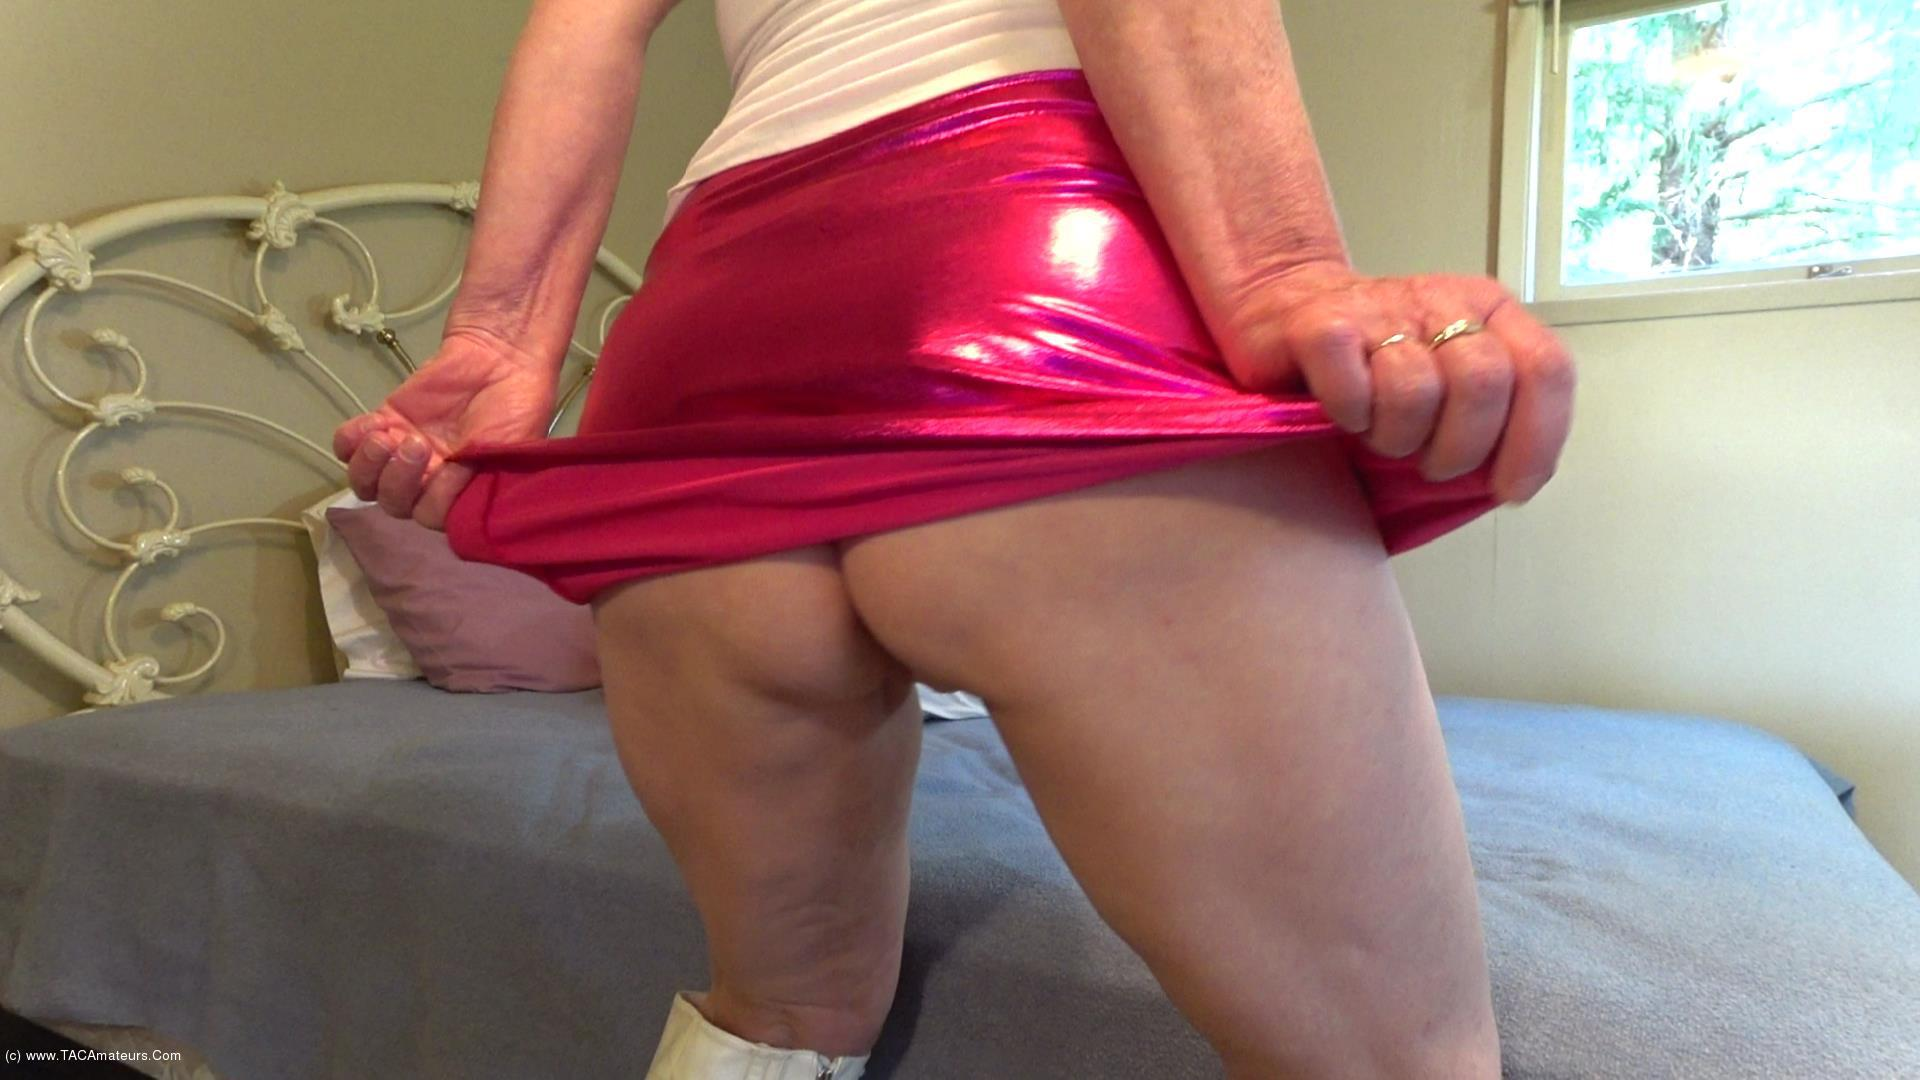 CougarBabeJolee - Sweet Arse Under A Shiny PVC Short Skirt scene 0